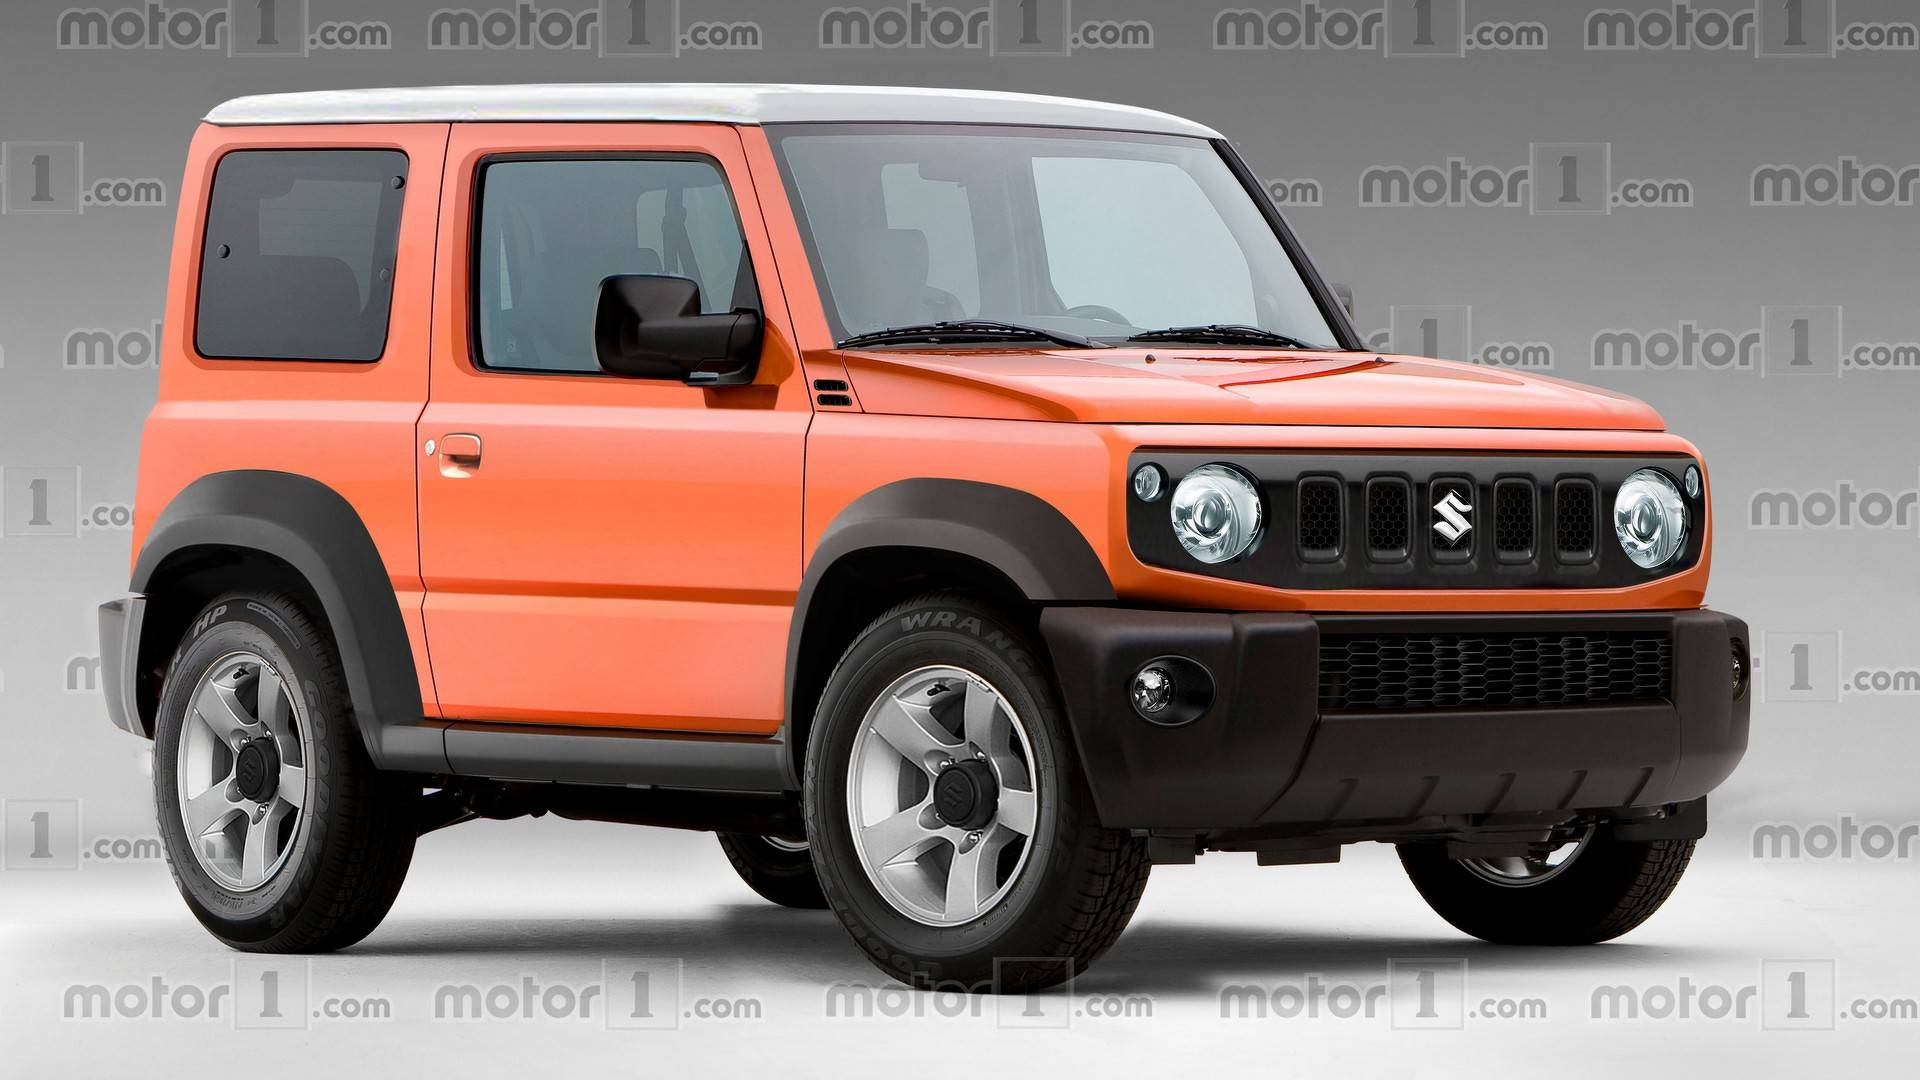 suzuki jimny production ends next generation debuting late 2018 flywheel. Black Bedroom Furniture Sets. Home Design Ideas